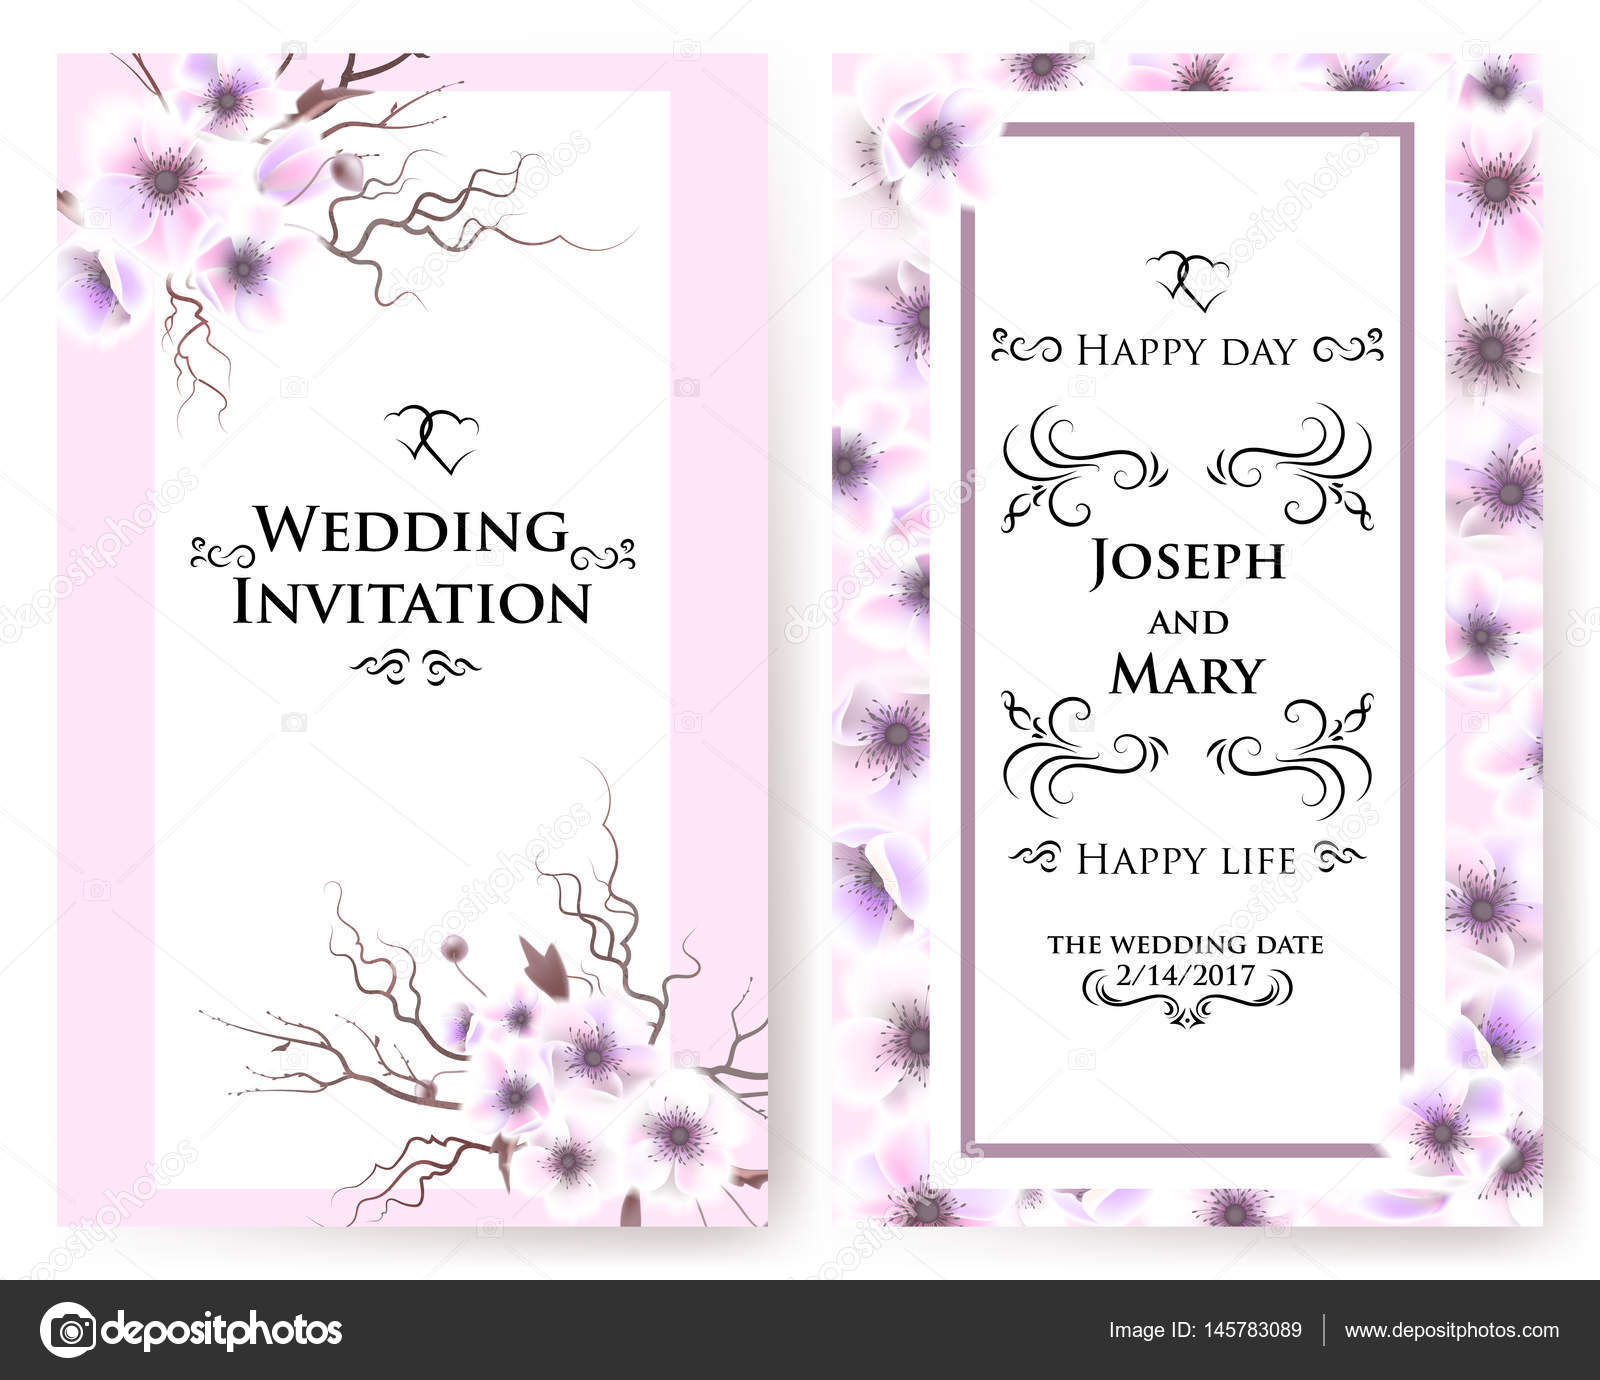 Postcard with delicate flowers anemones wedding invitation thank wedding invitation thank you save the date cards menu flyer banner template happy birthday greeting card vector by artabramoa maxwellsz